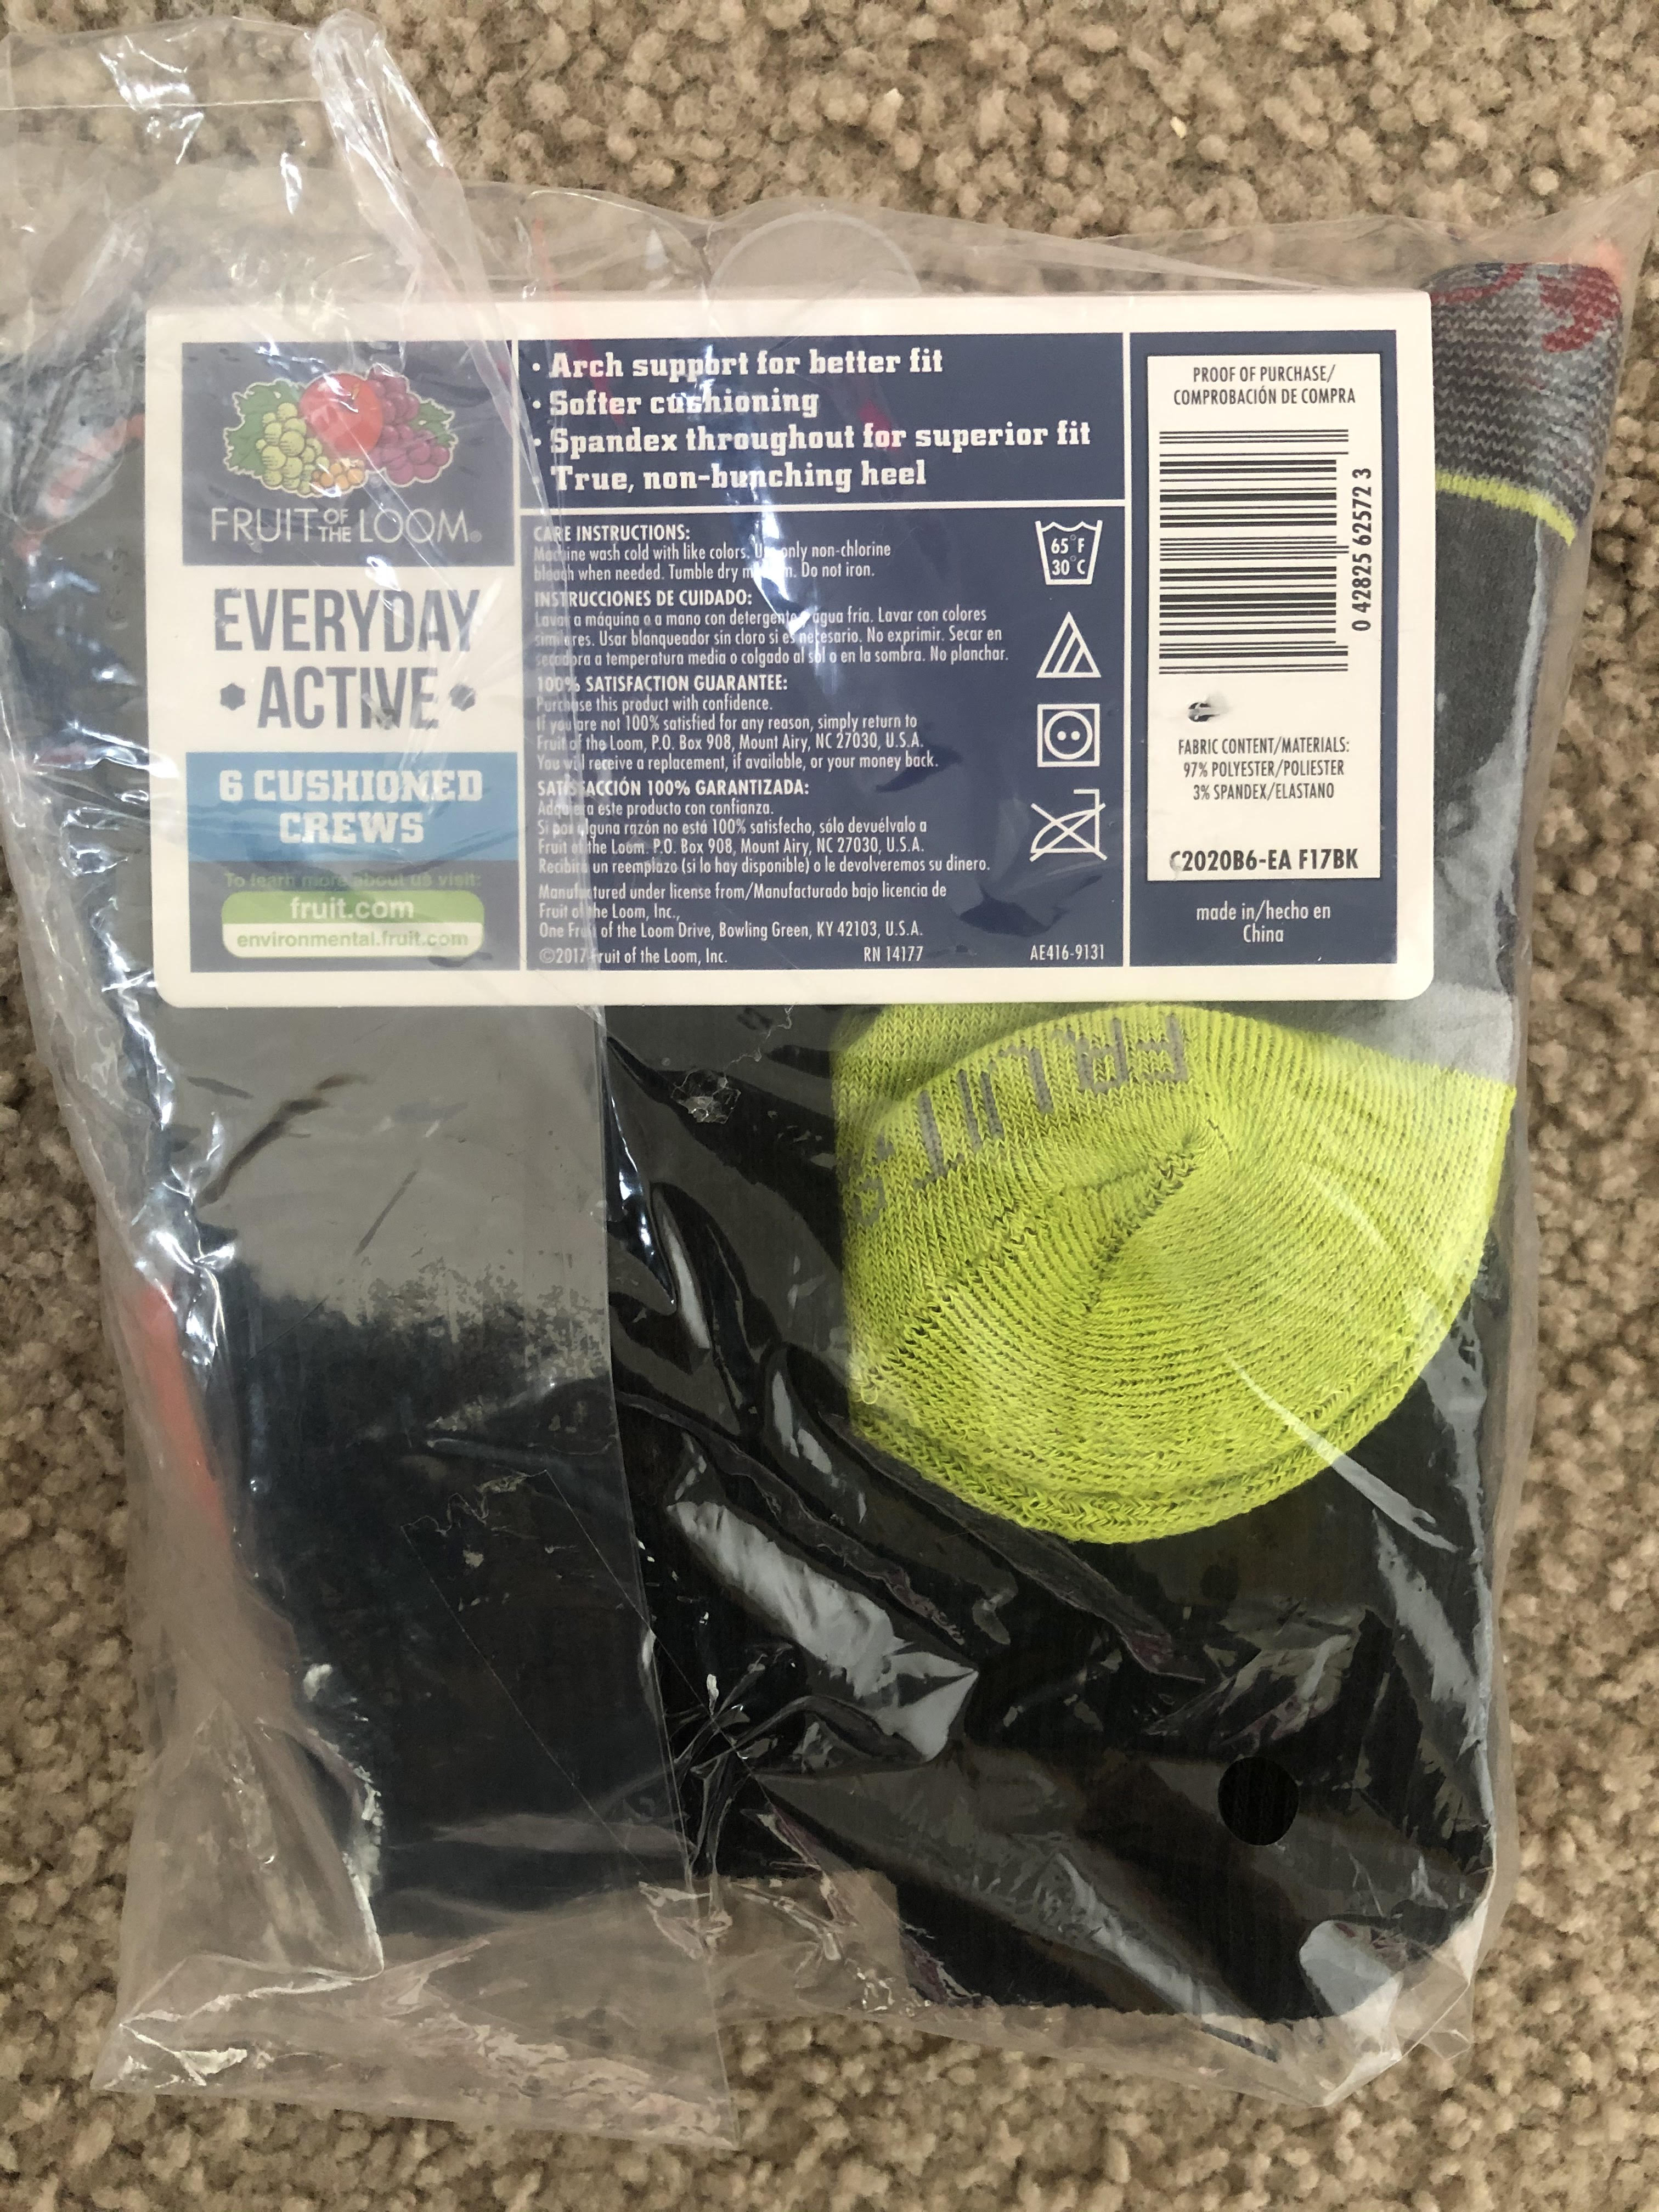 Fruit Of The Loom - 6 cushioned crew socks - size M (9 to 2&1/2)